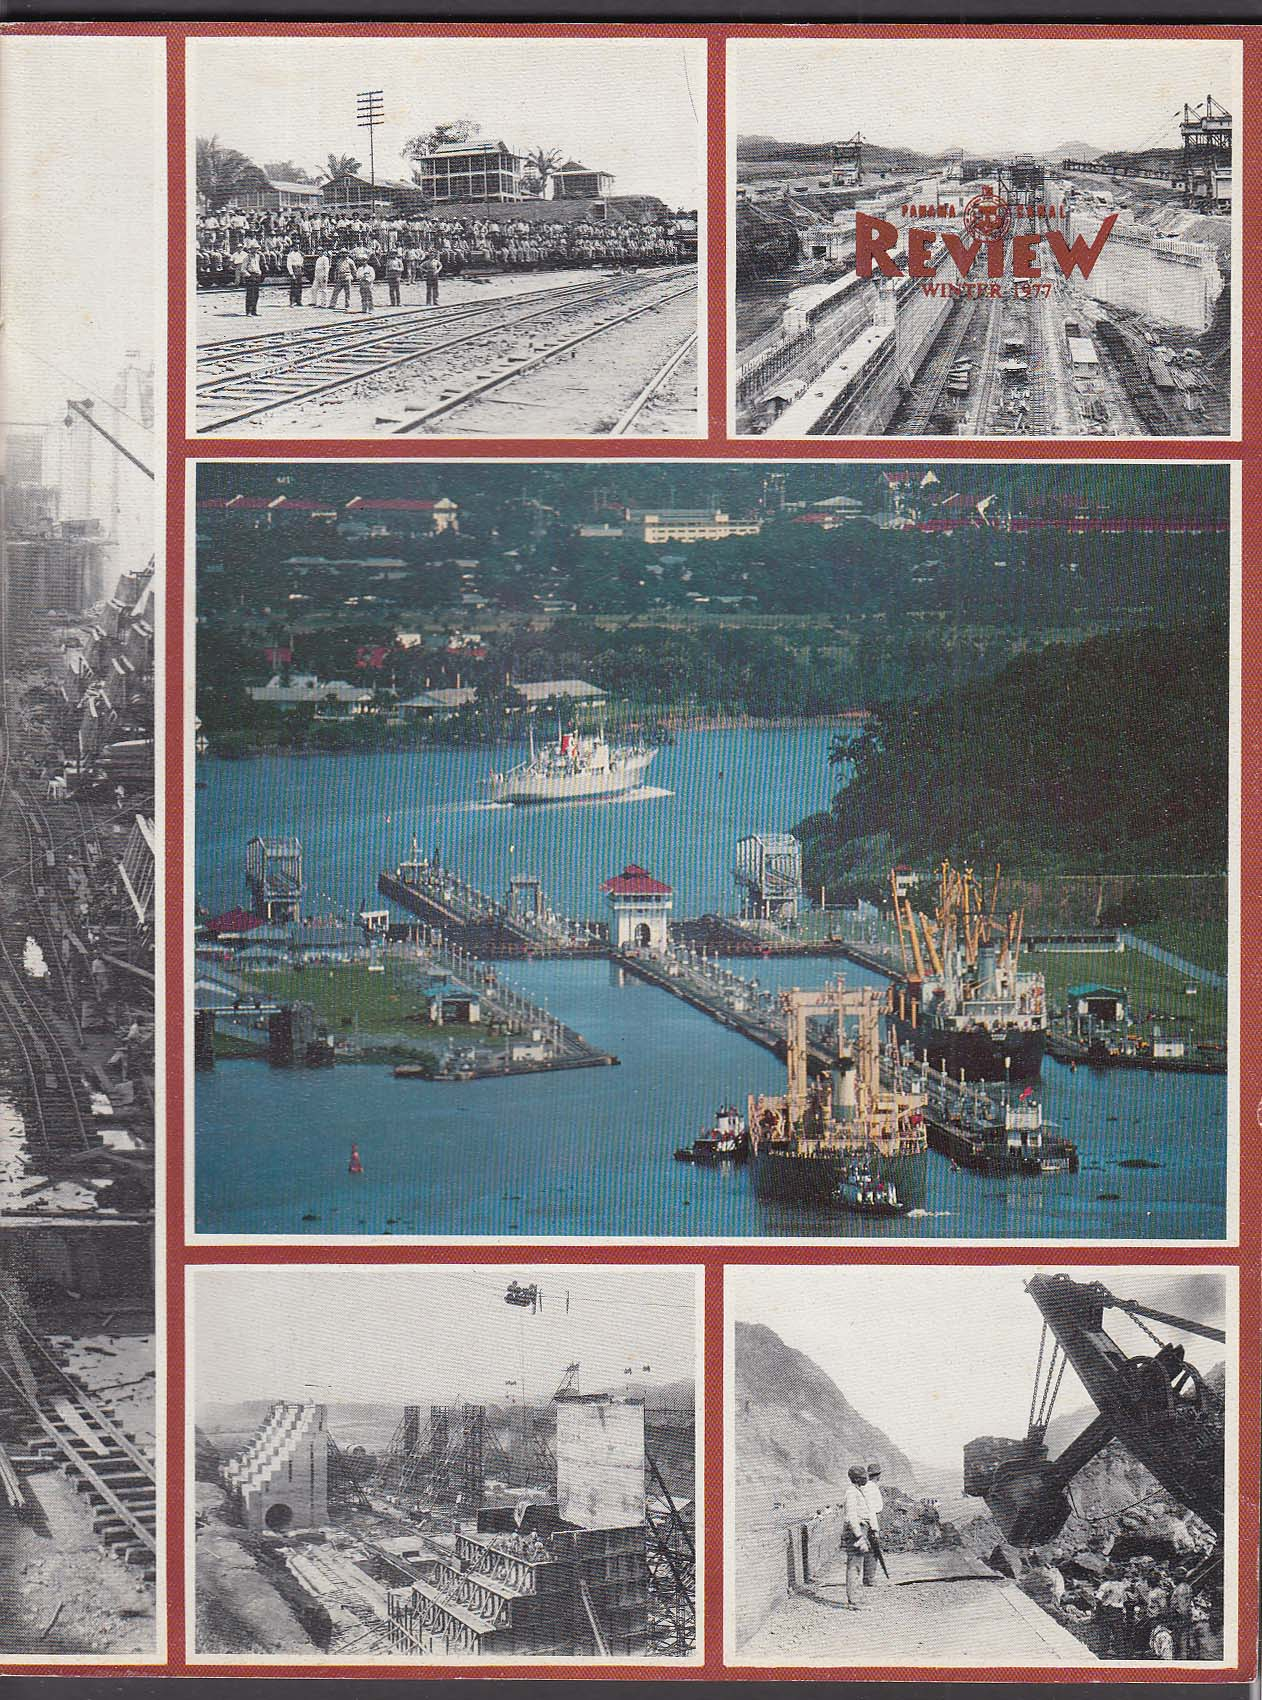 PANAMA CANAL REVIEW Special Photography Issue Winter 1977